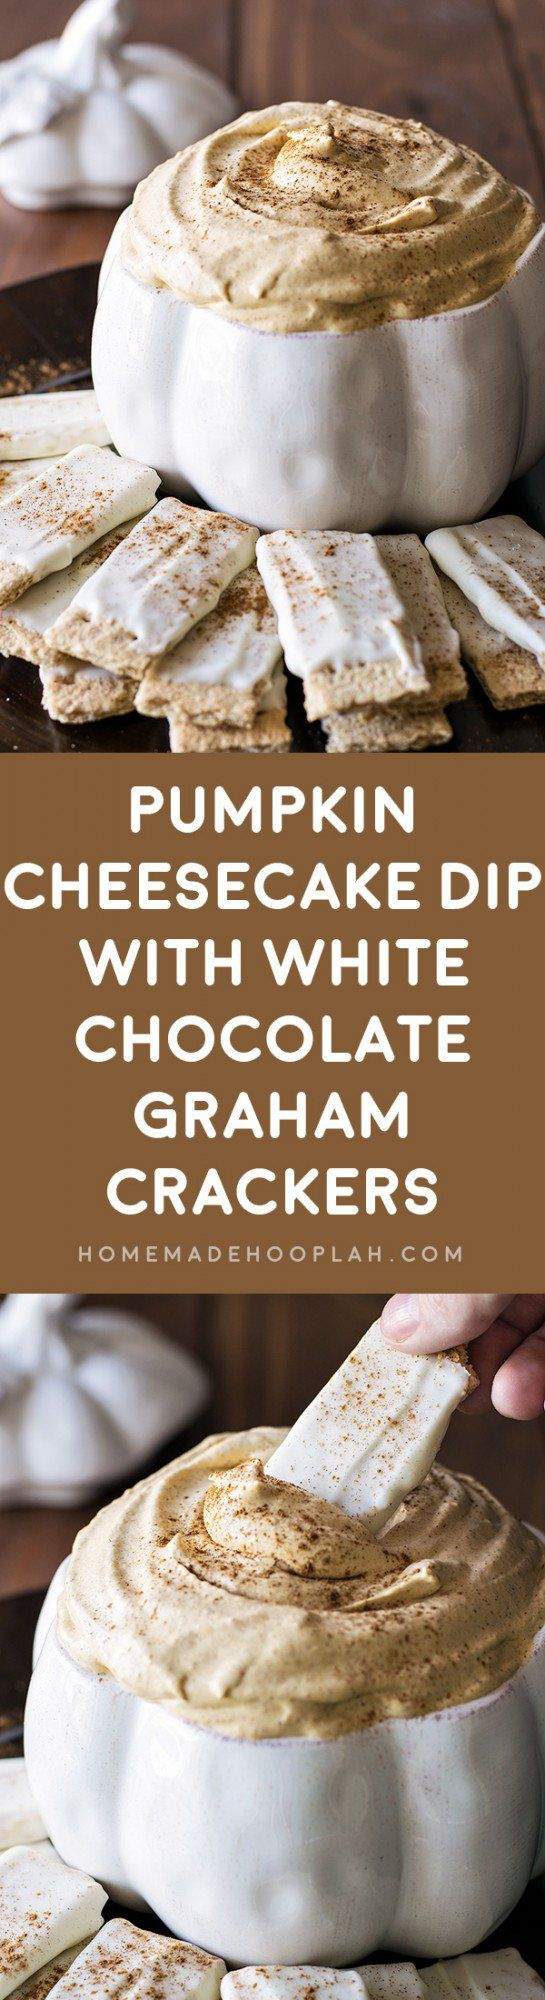 Pumpkin Cheesecake Dip with White Chocolate Graham Crackers! Appease your pumpkin cravings with this delicious pumpkin cheesecake dip, complete with white chocolate covered graham crackers.   HomemadeHooplah.com